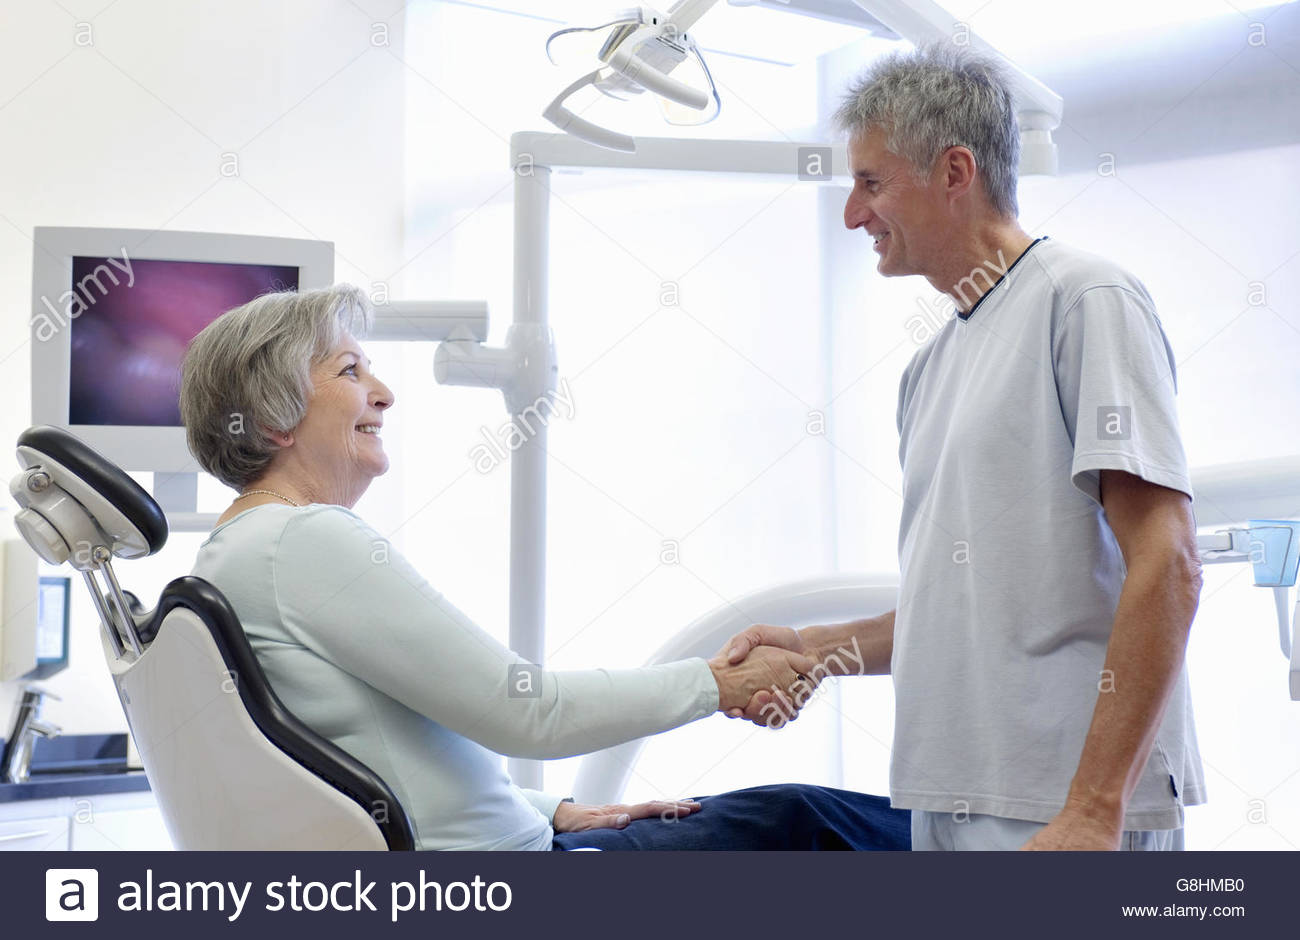 Patient sitting in dentist's chair shaking hands with dentist - Stock Image